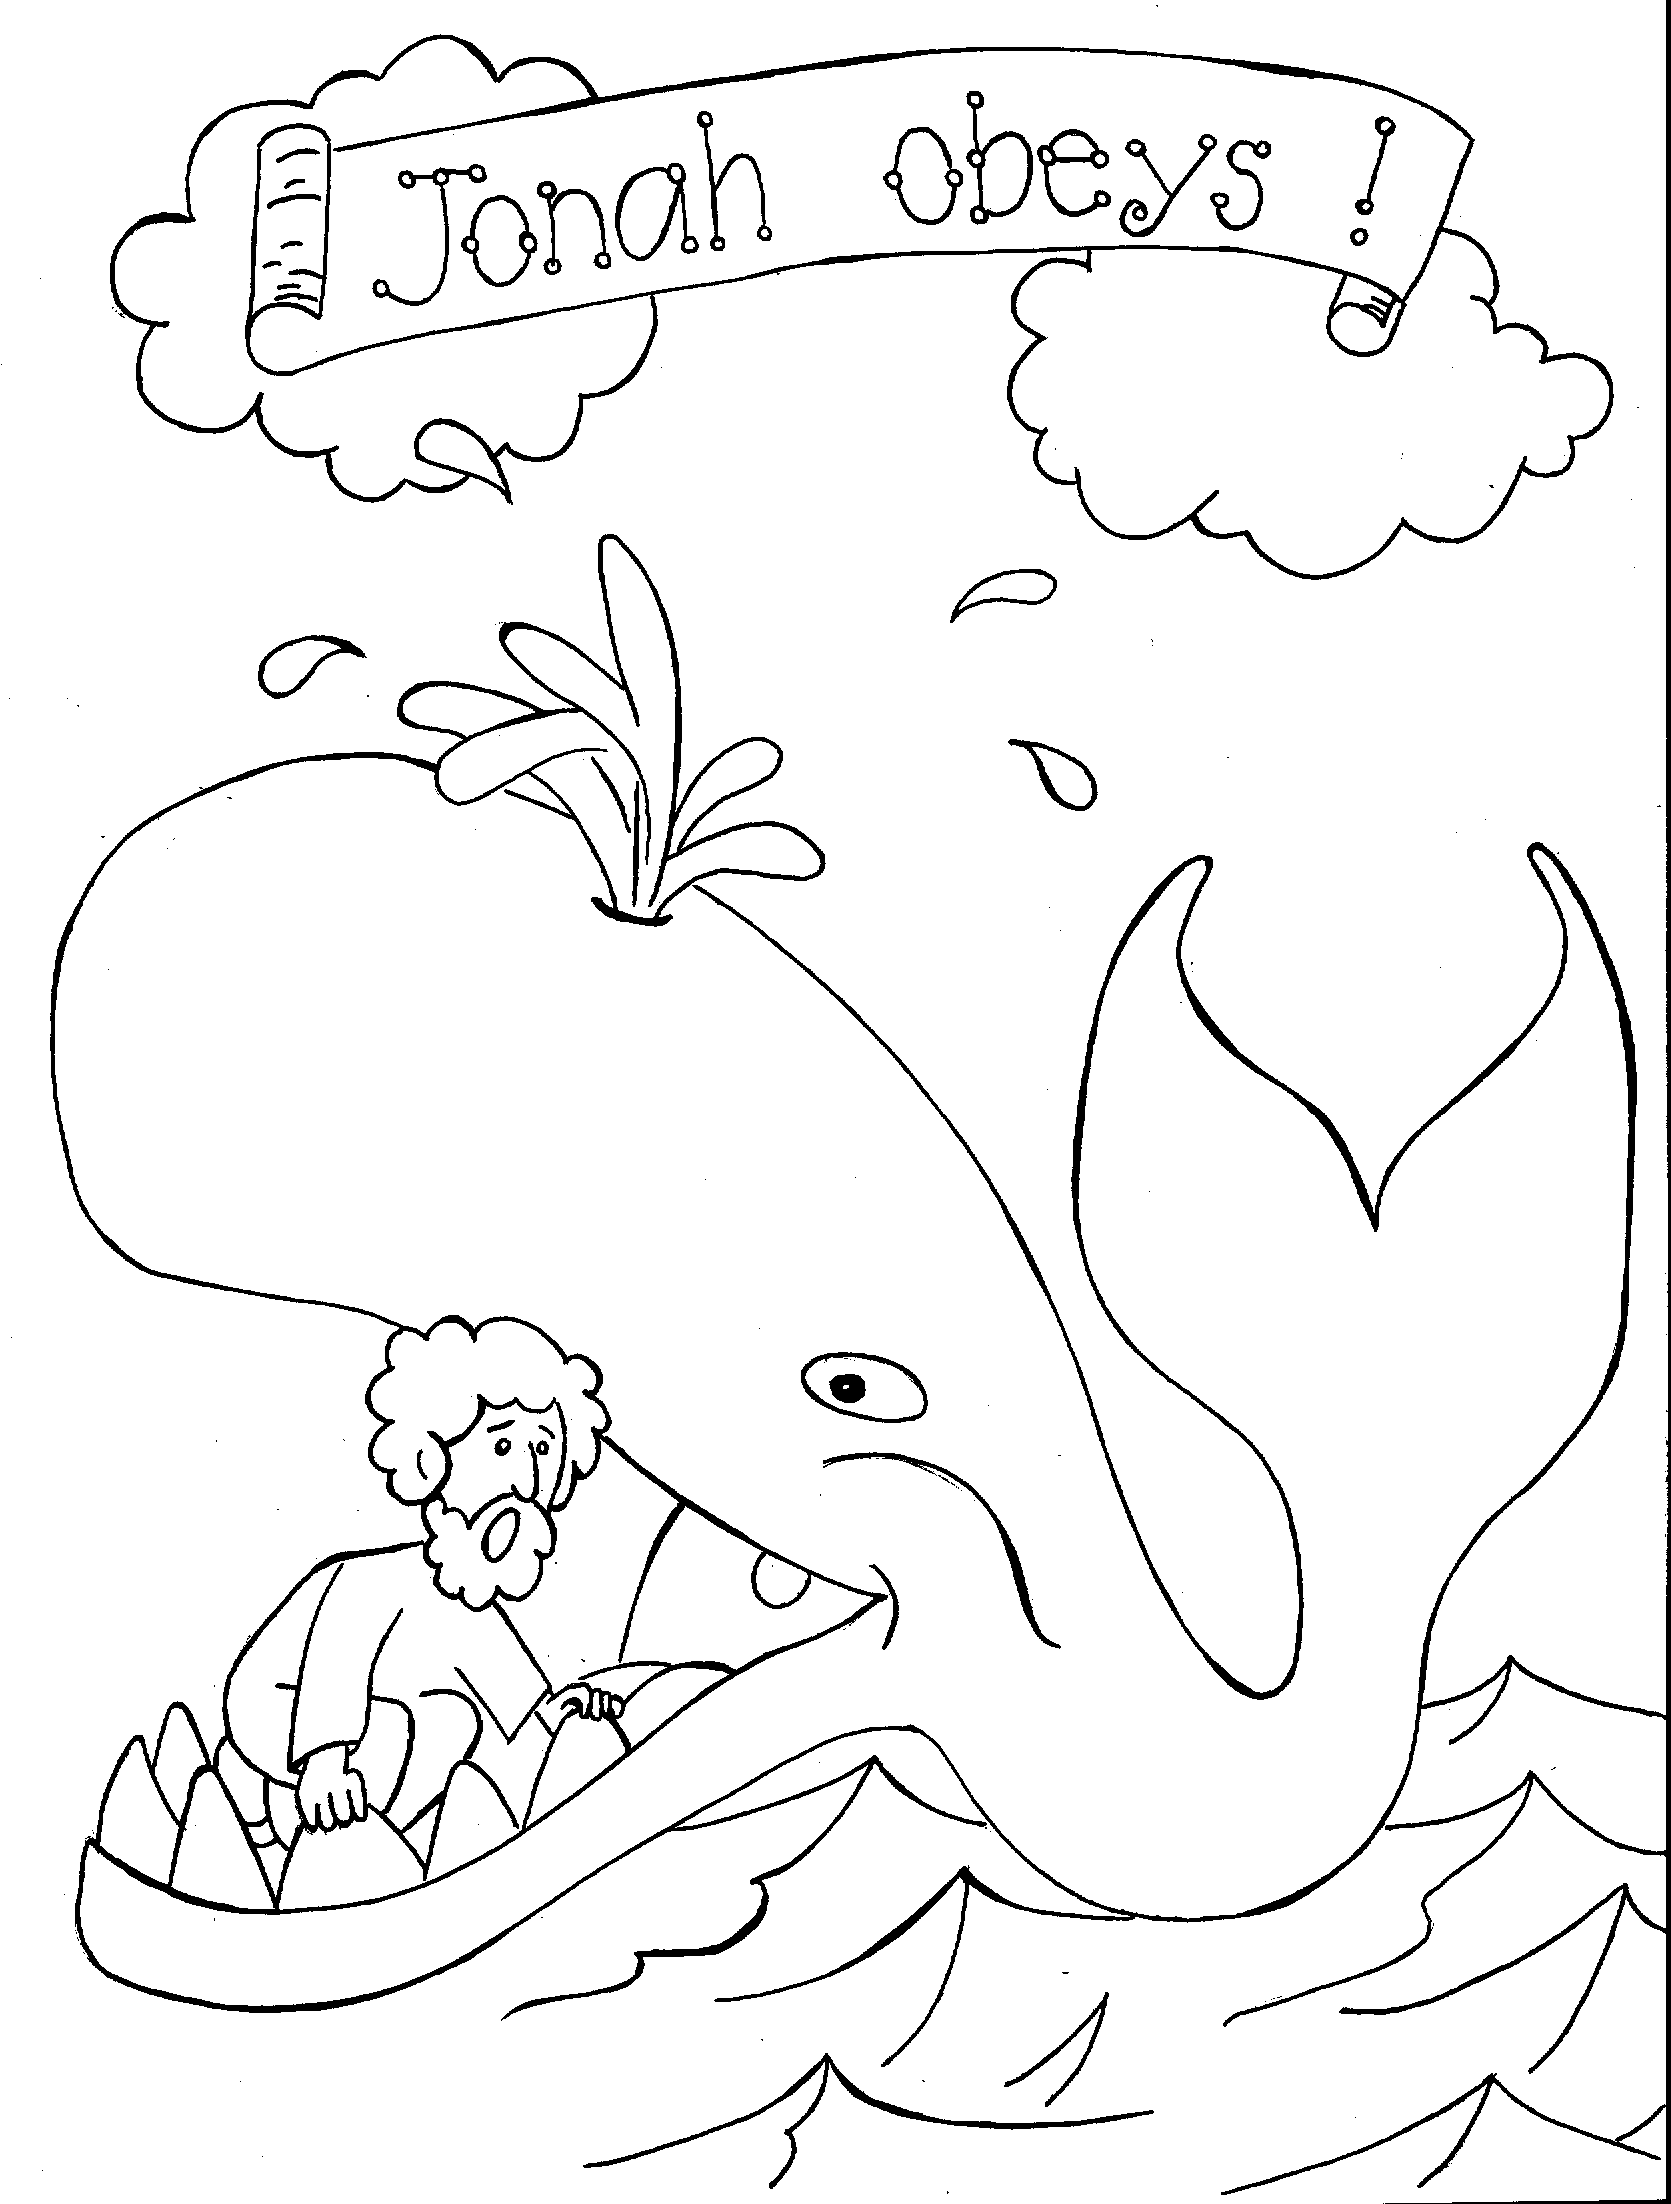 Free printable coloring pages gideon - Free Printable Coloring Pages Gideon 24